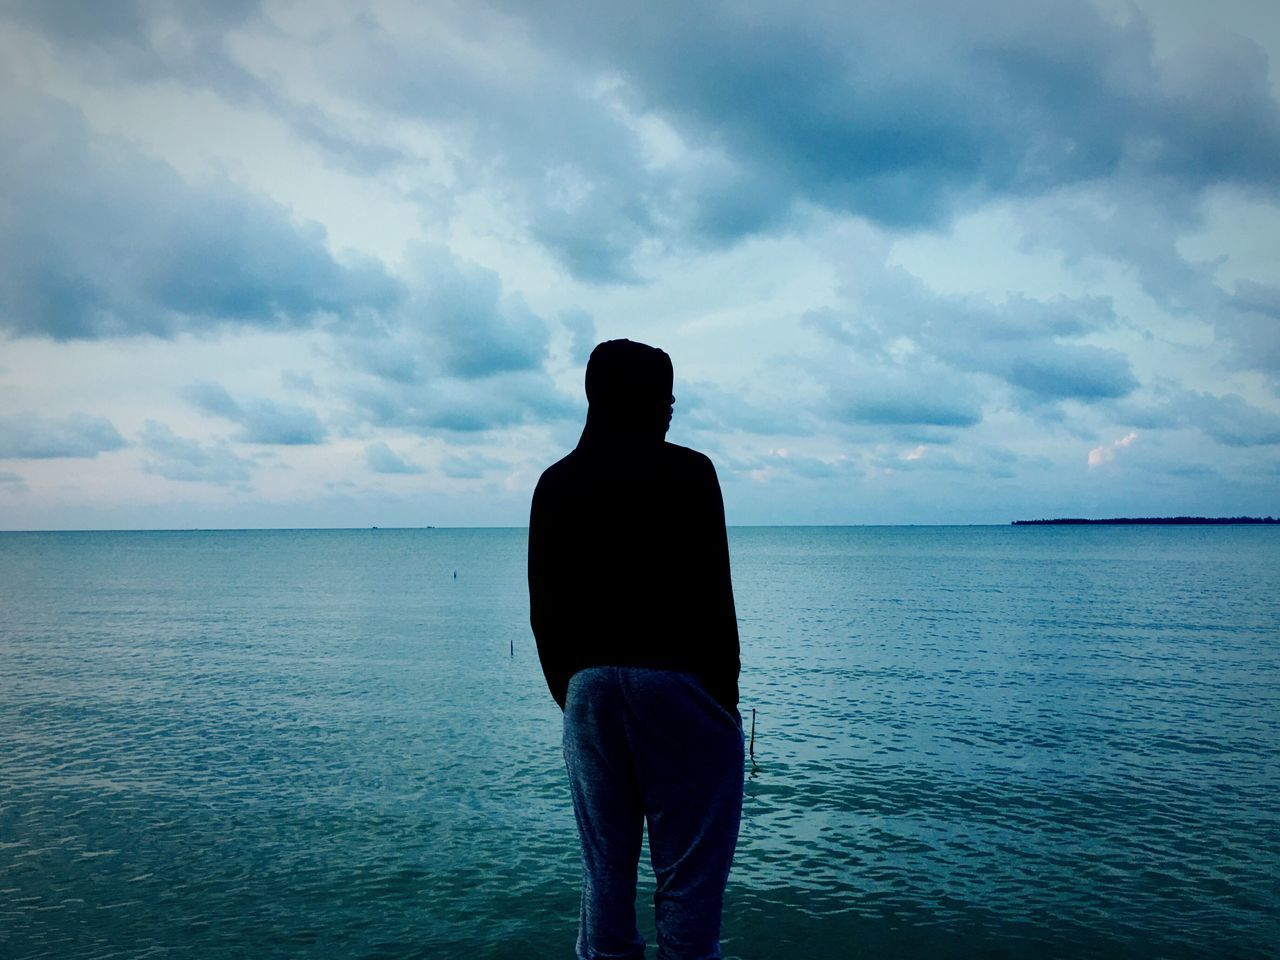 Goodday Dark Sea Goodbye Standing Horizon Over Water Three Quarter Length Sky Standing Cloud - Sky One Person Scenics Water Tranquility Silhouette Real People Men Outdoors Beauty In Nature Nature Day One Man Only Adults Only